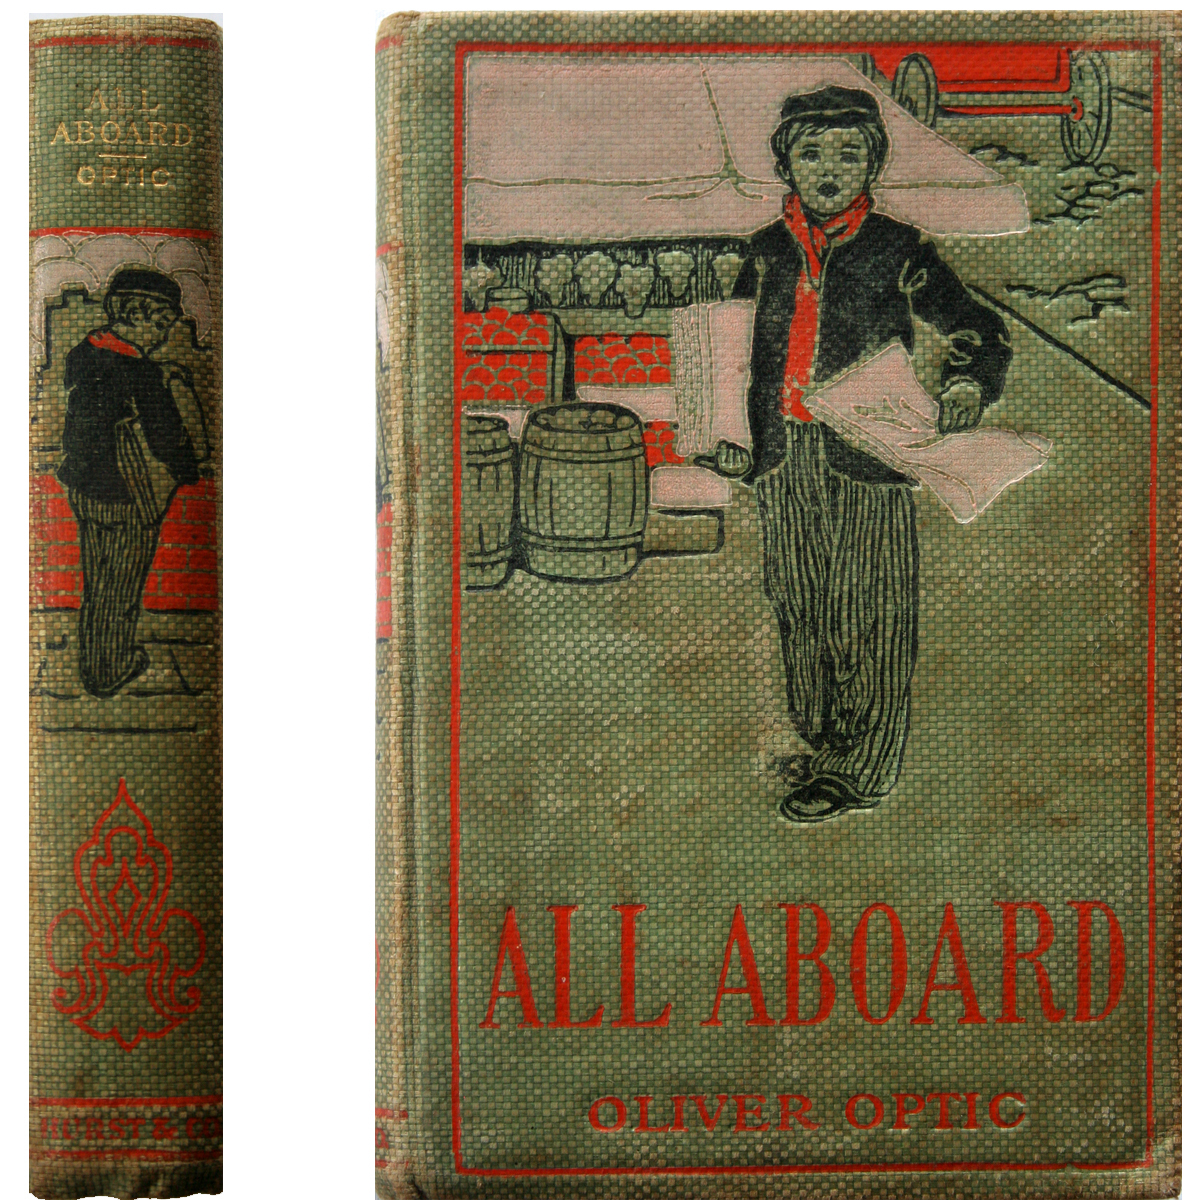 c. 1900 Oliver Optic - All Aboard *Vintage Children's Book*